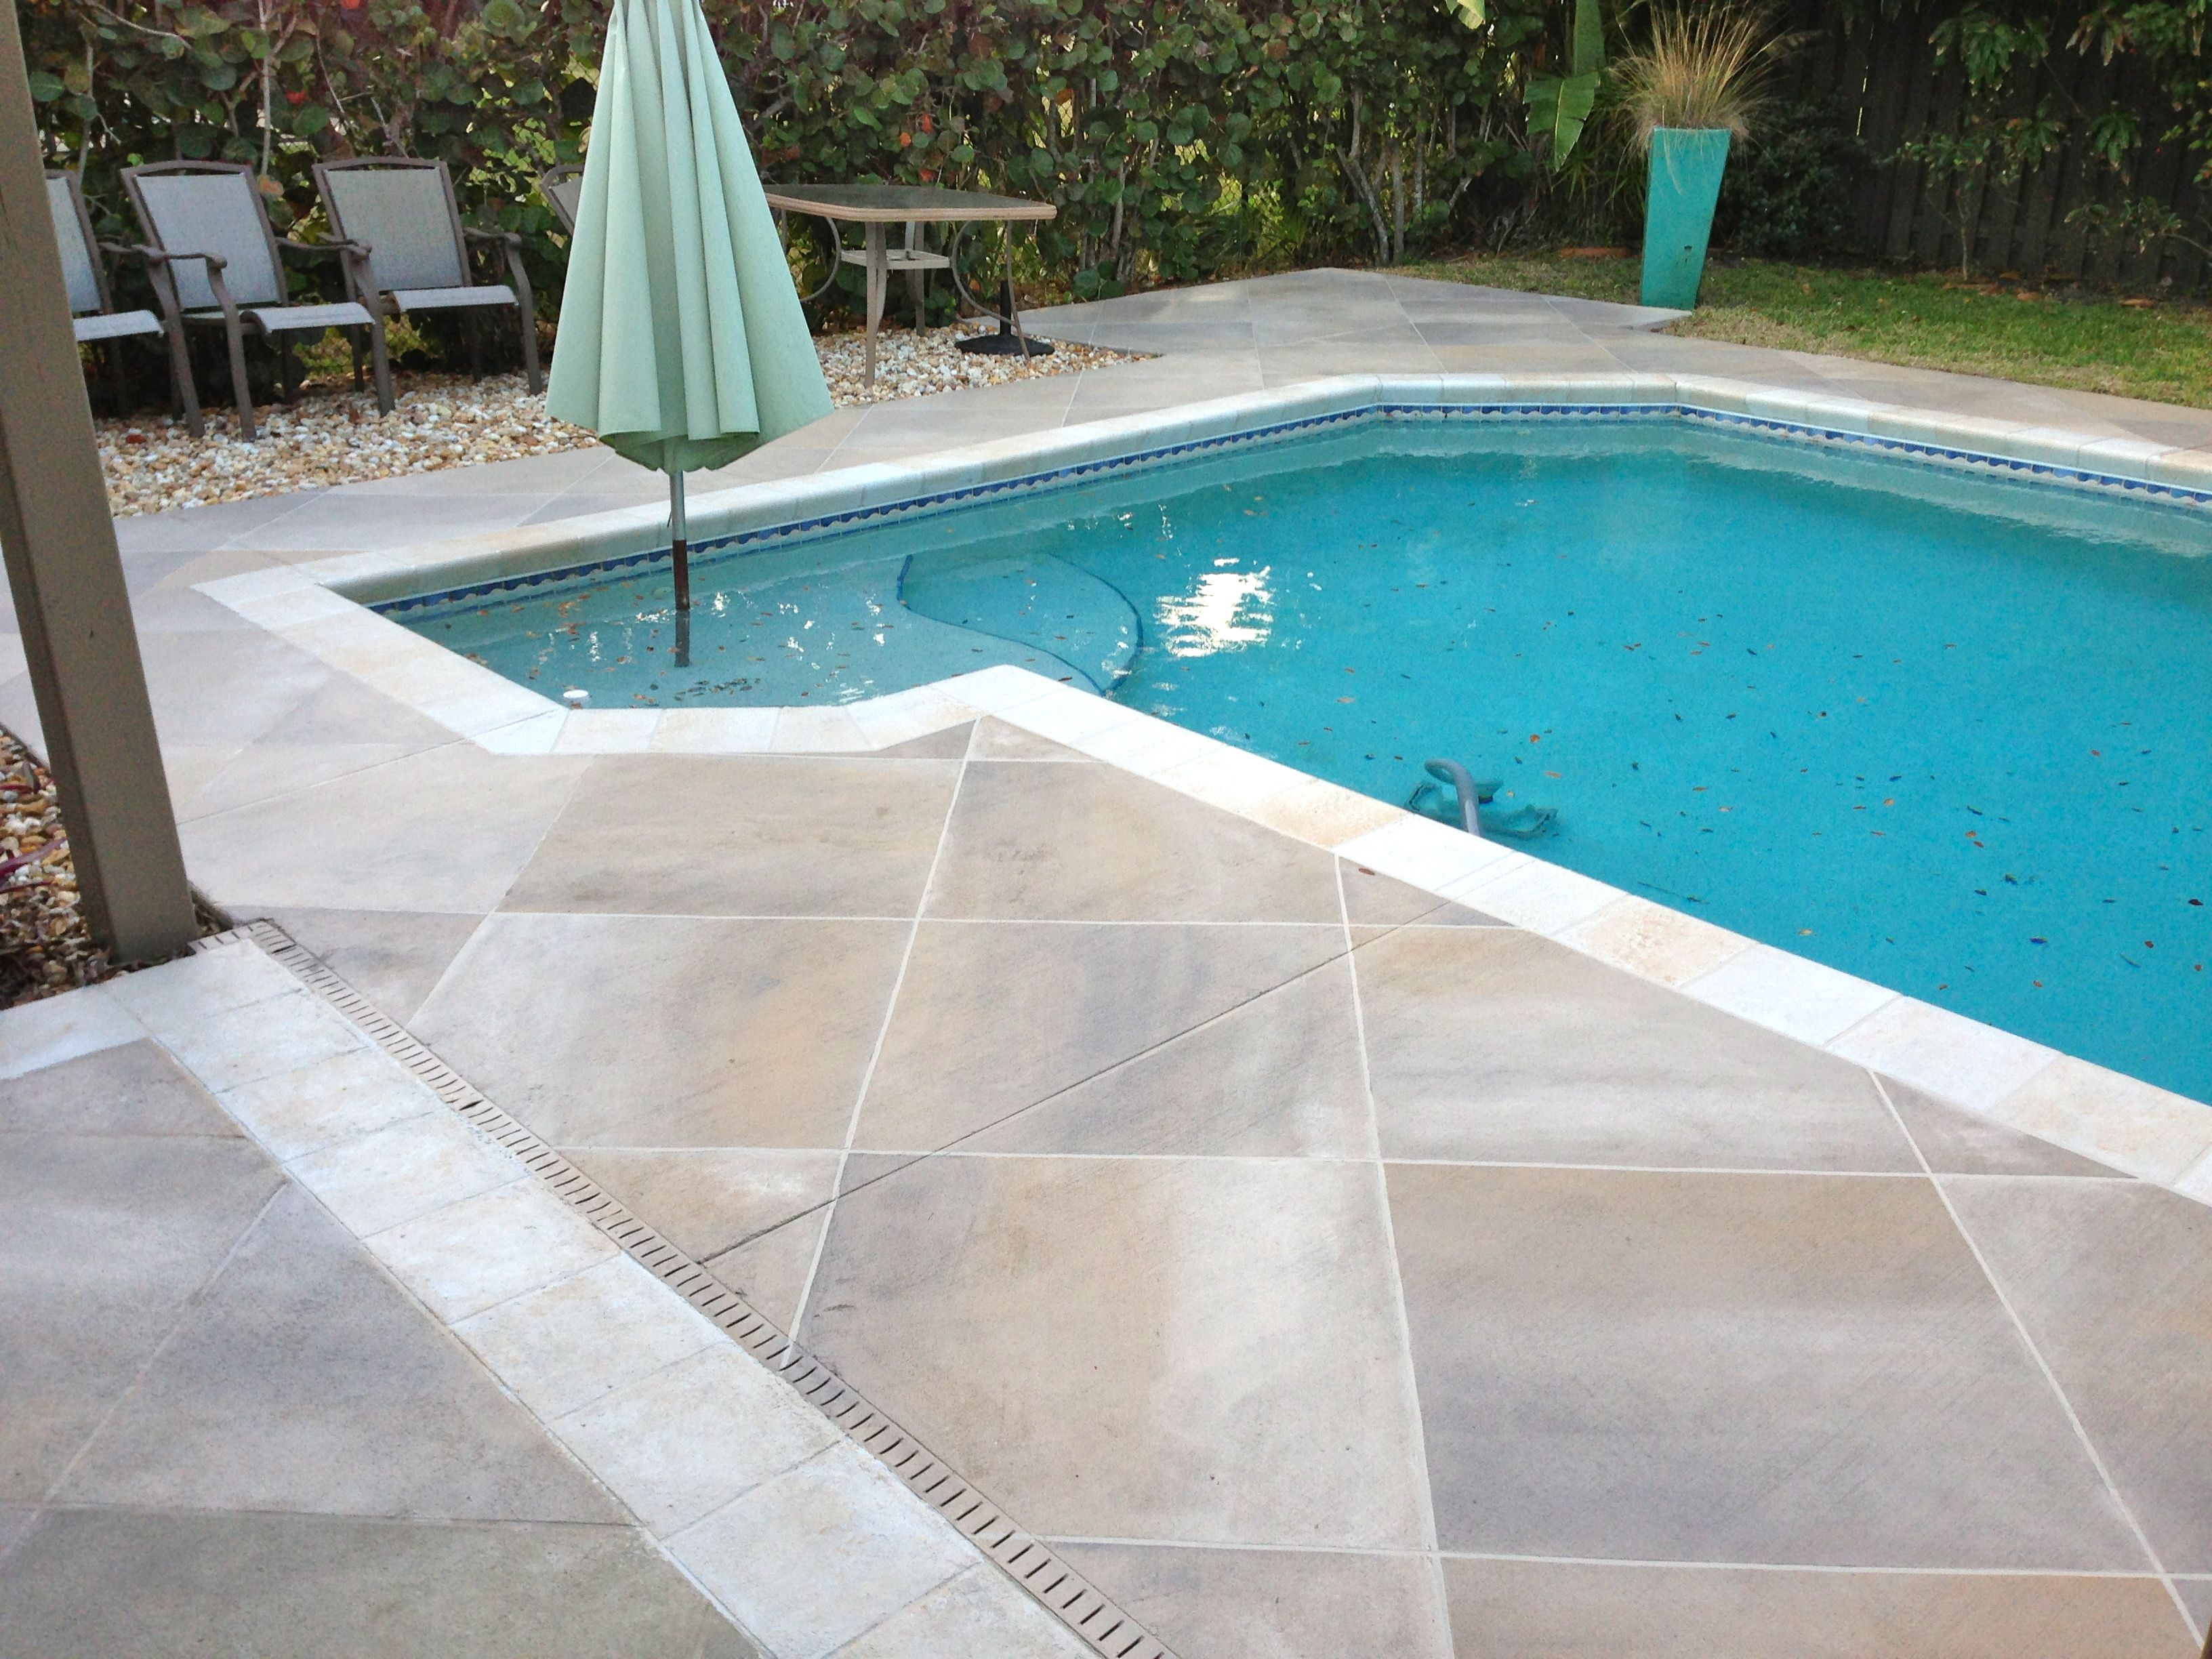 stained concrete pool Google Search Travertine pool